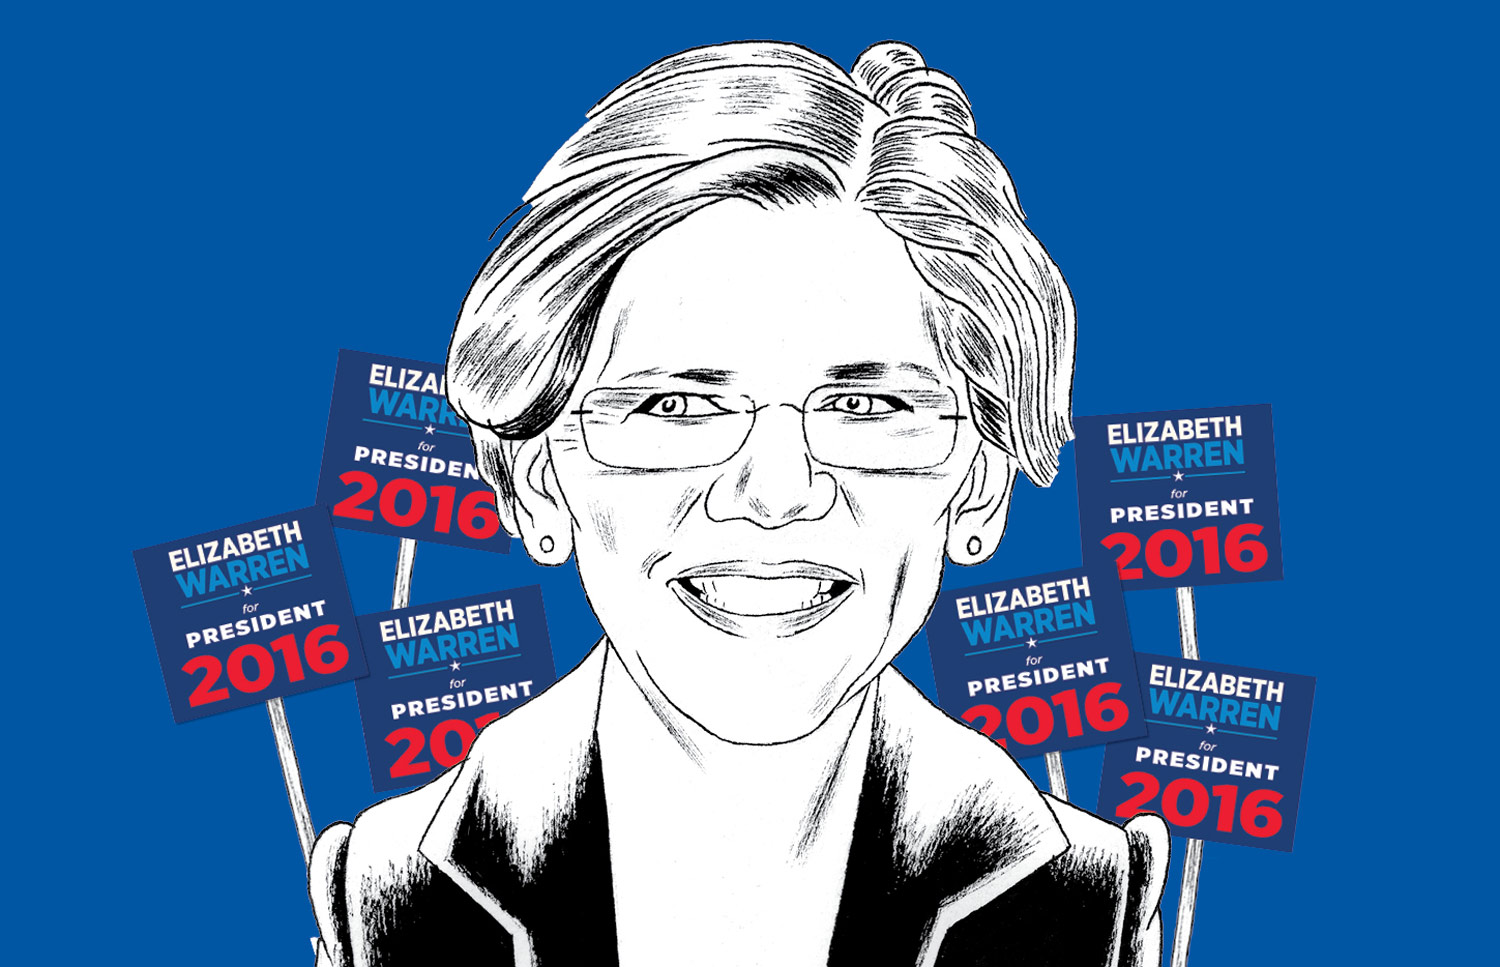 Elizabeth-Warren-Insists-She's-Not-Running-for-President.-These-Activists-Are-Trying-to-Change-Her-Mind